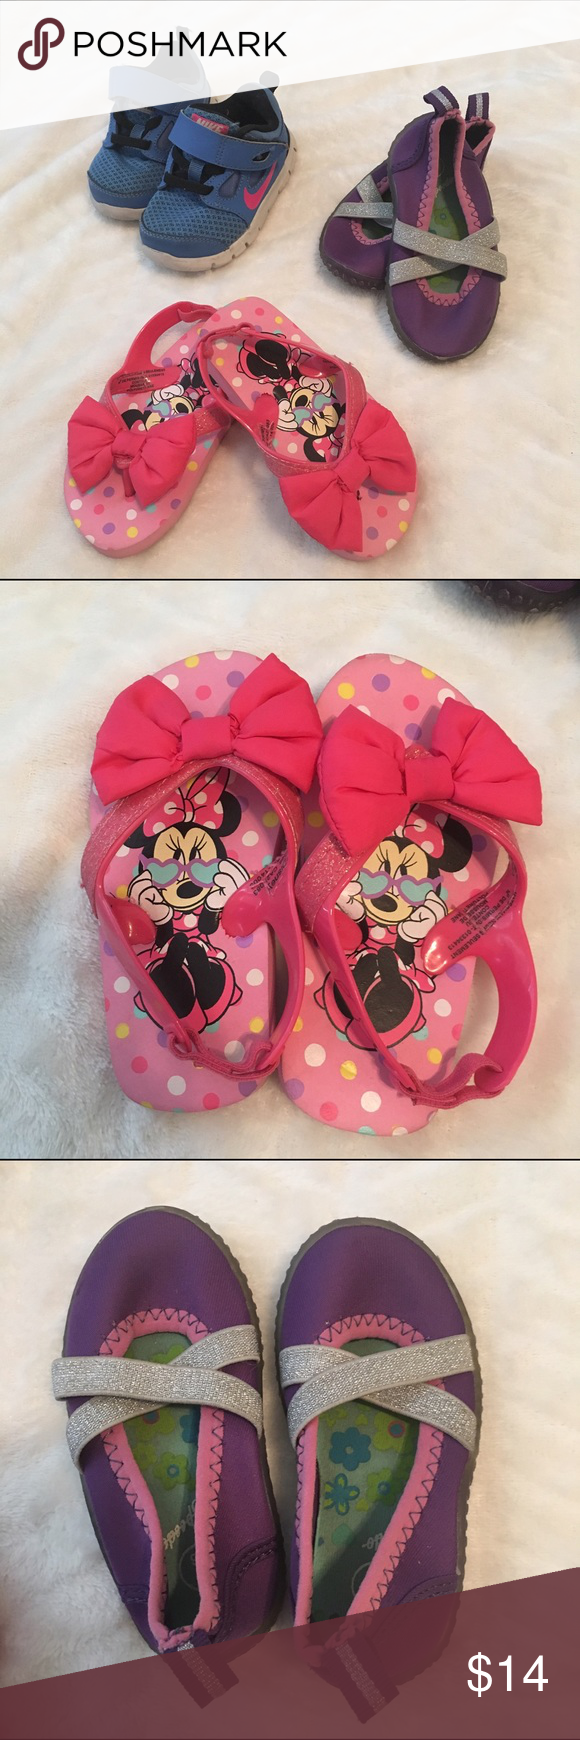 Bundle of girls shoes sz 5 Bundle of USED girls shoes..purple water shoes & Minnie Mouse sandals r sz 5/6...all in used condition but still in good shape! Shoes